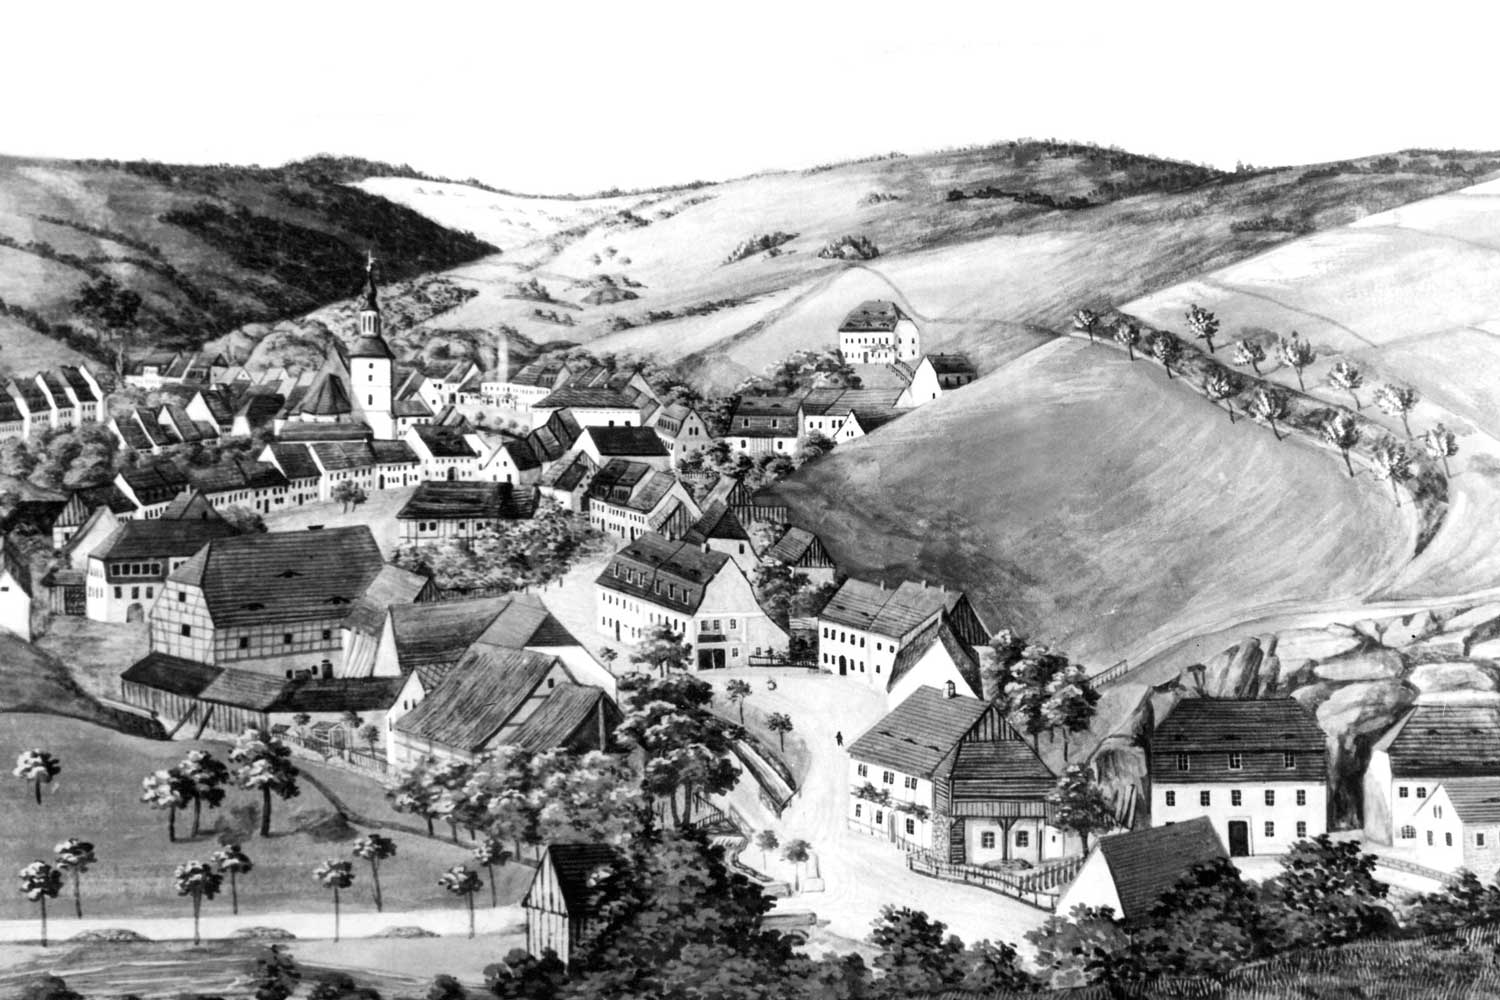 In 1845, in a little valley in the Saxon Ore Mountains, a unique success story began to unfold